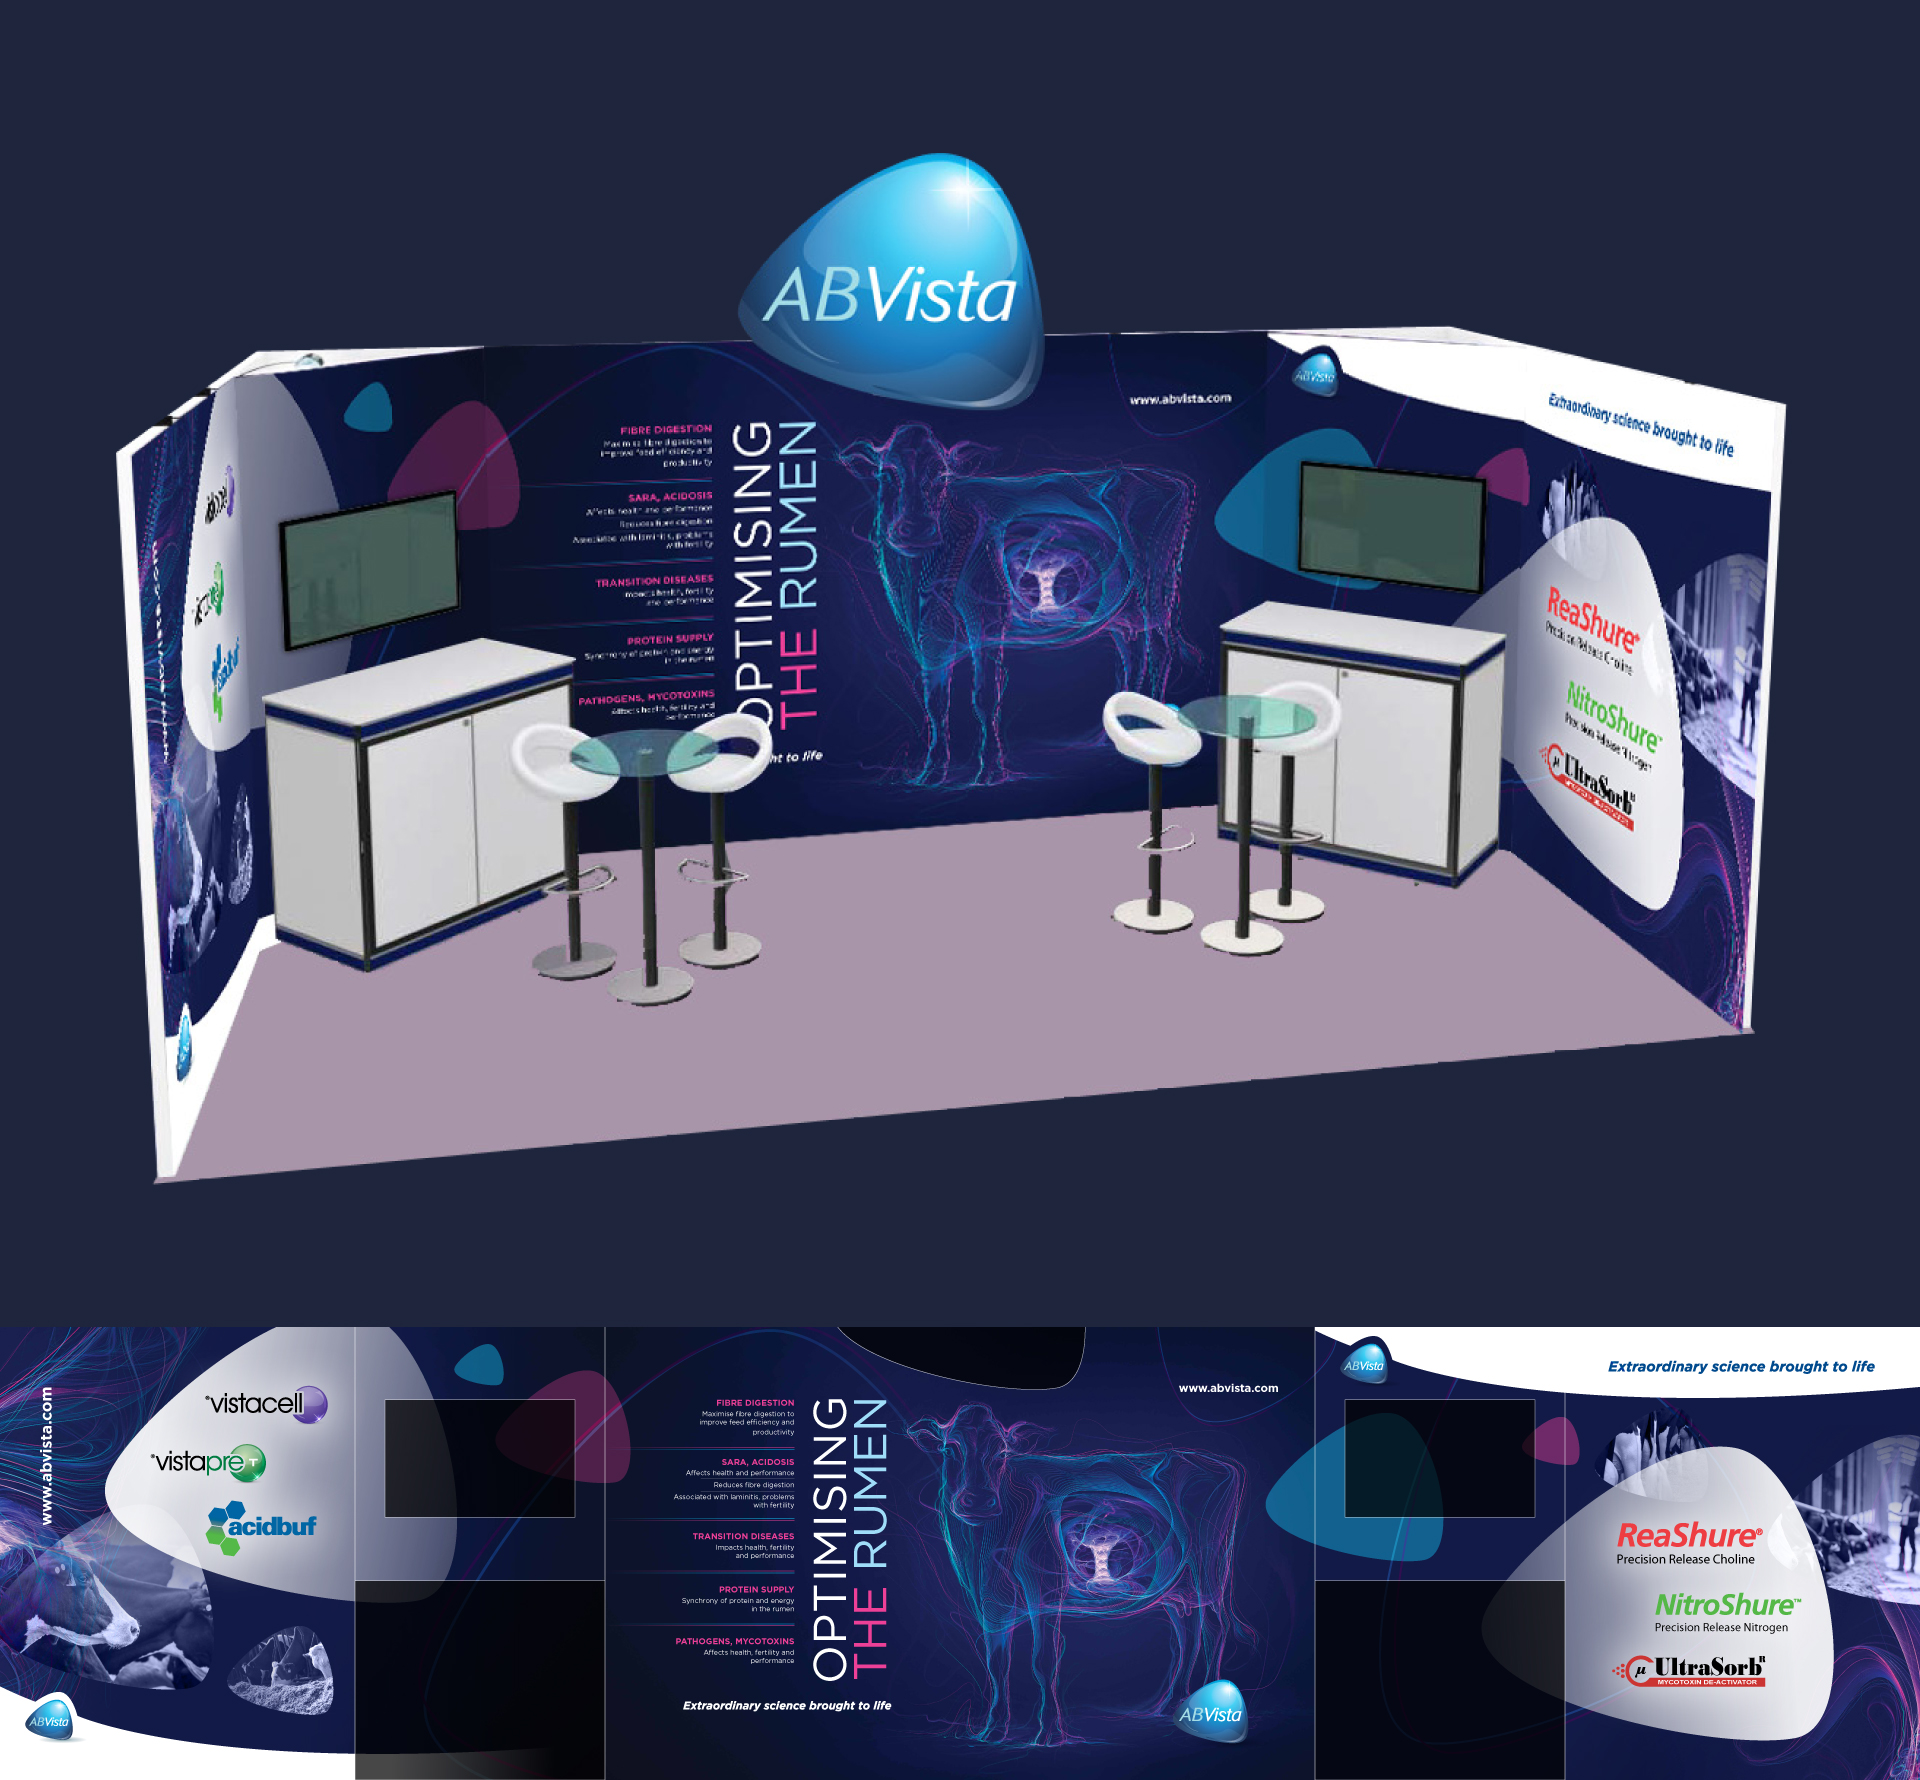 Design & Digital / Web Agency, Worcester | Exhibition Design Agency